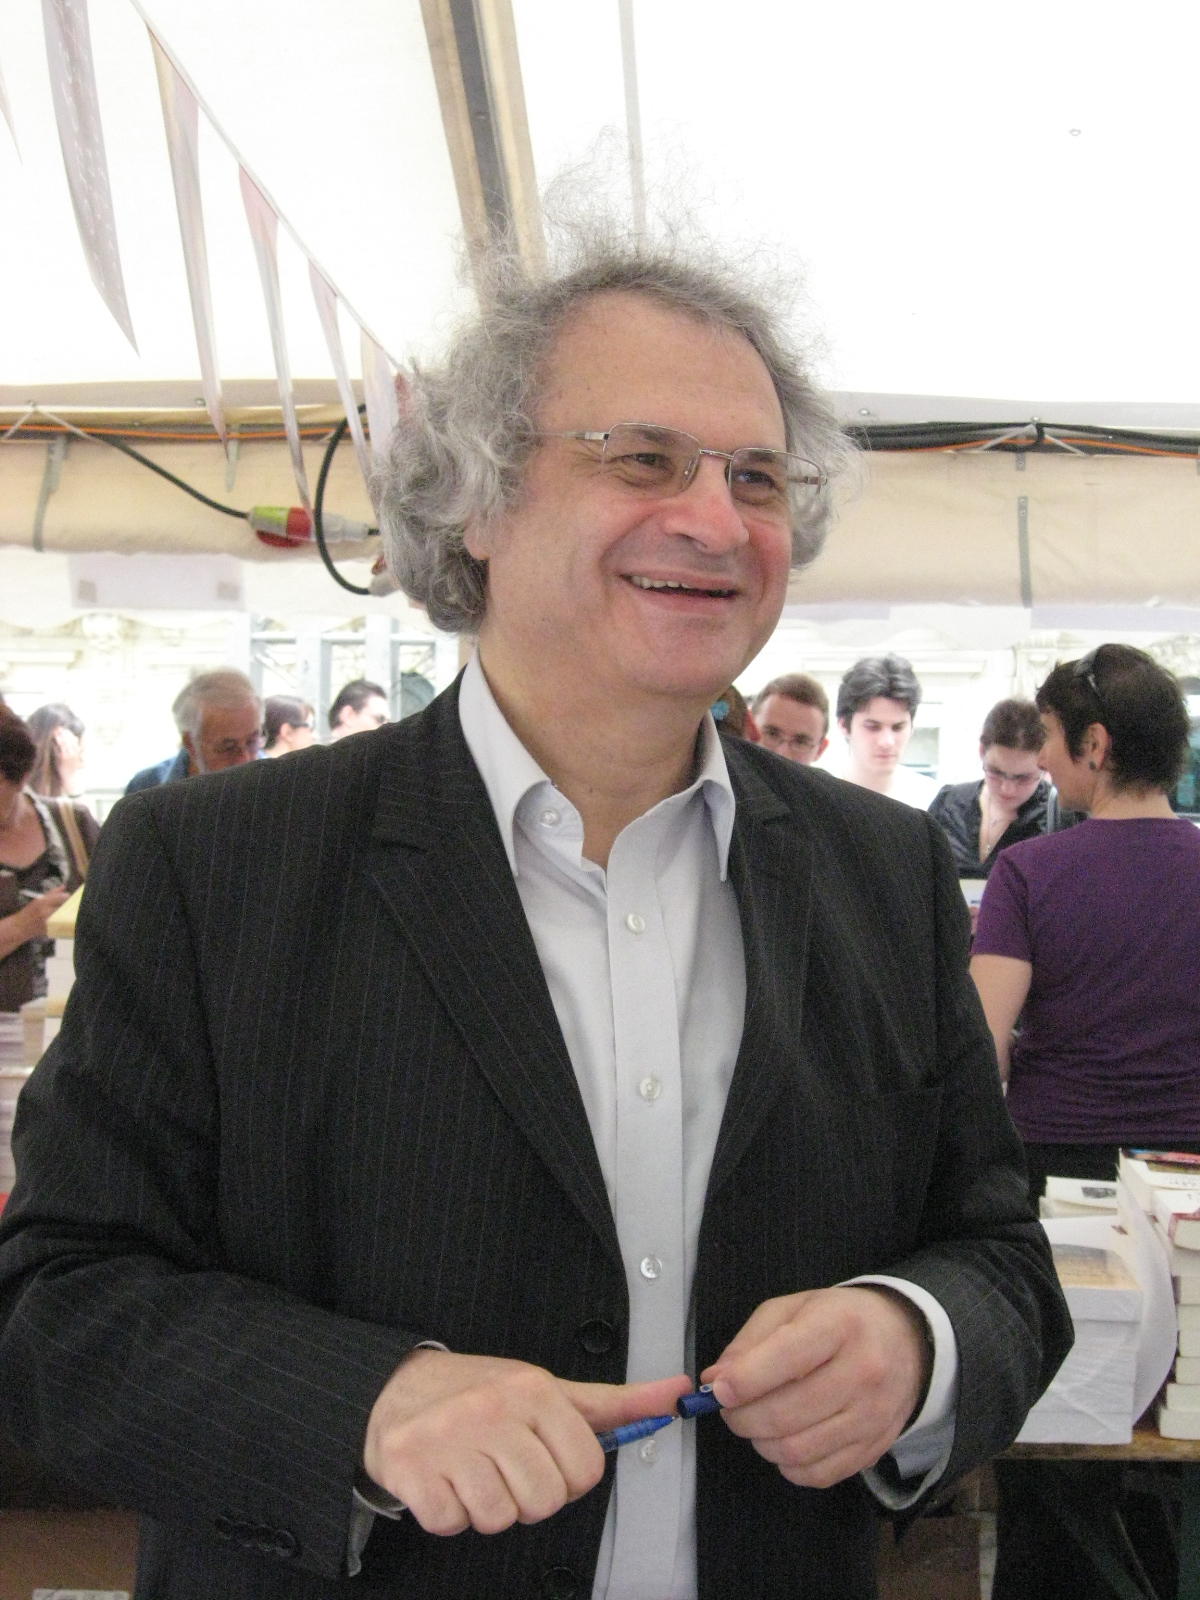 the rock of tanios amin maalouf Buy the rock of tanios by amin maalouf (isbn: 9780351314087) from amazon's book store everyday low prices and free delivery on eligible orders.